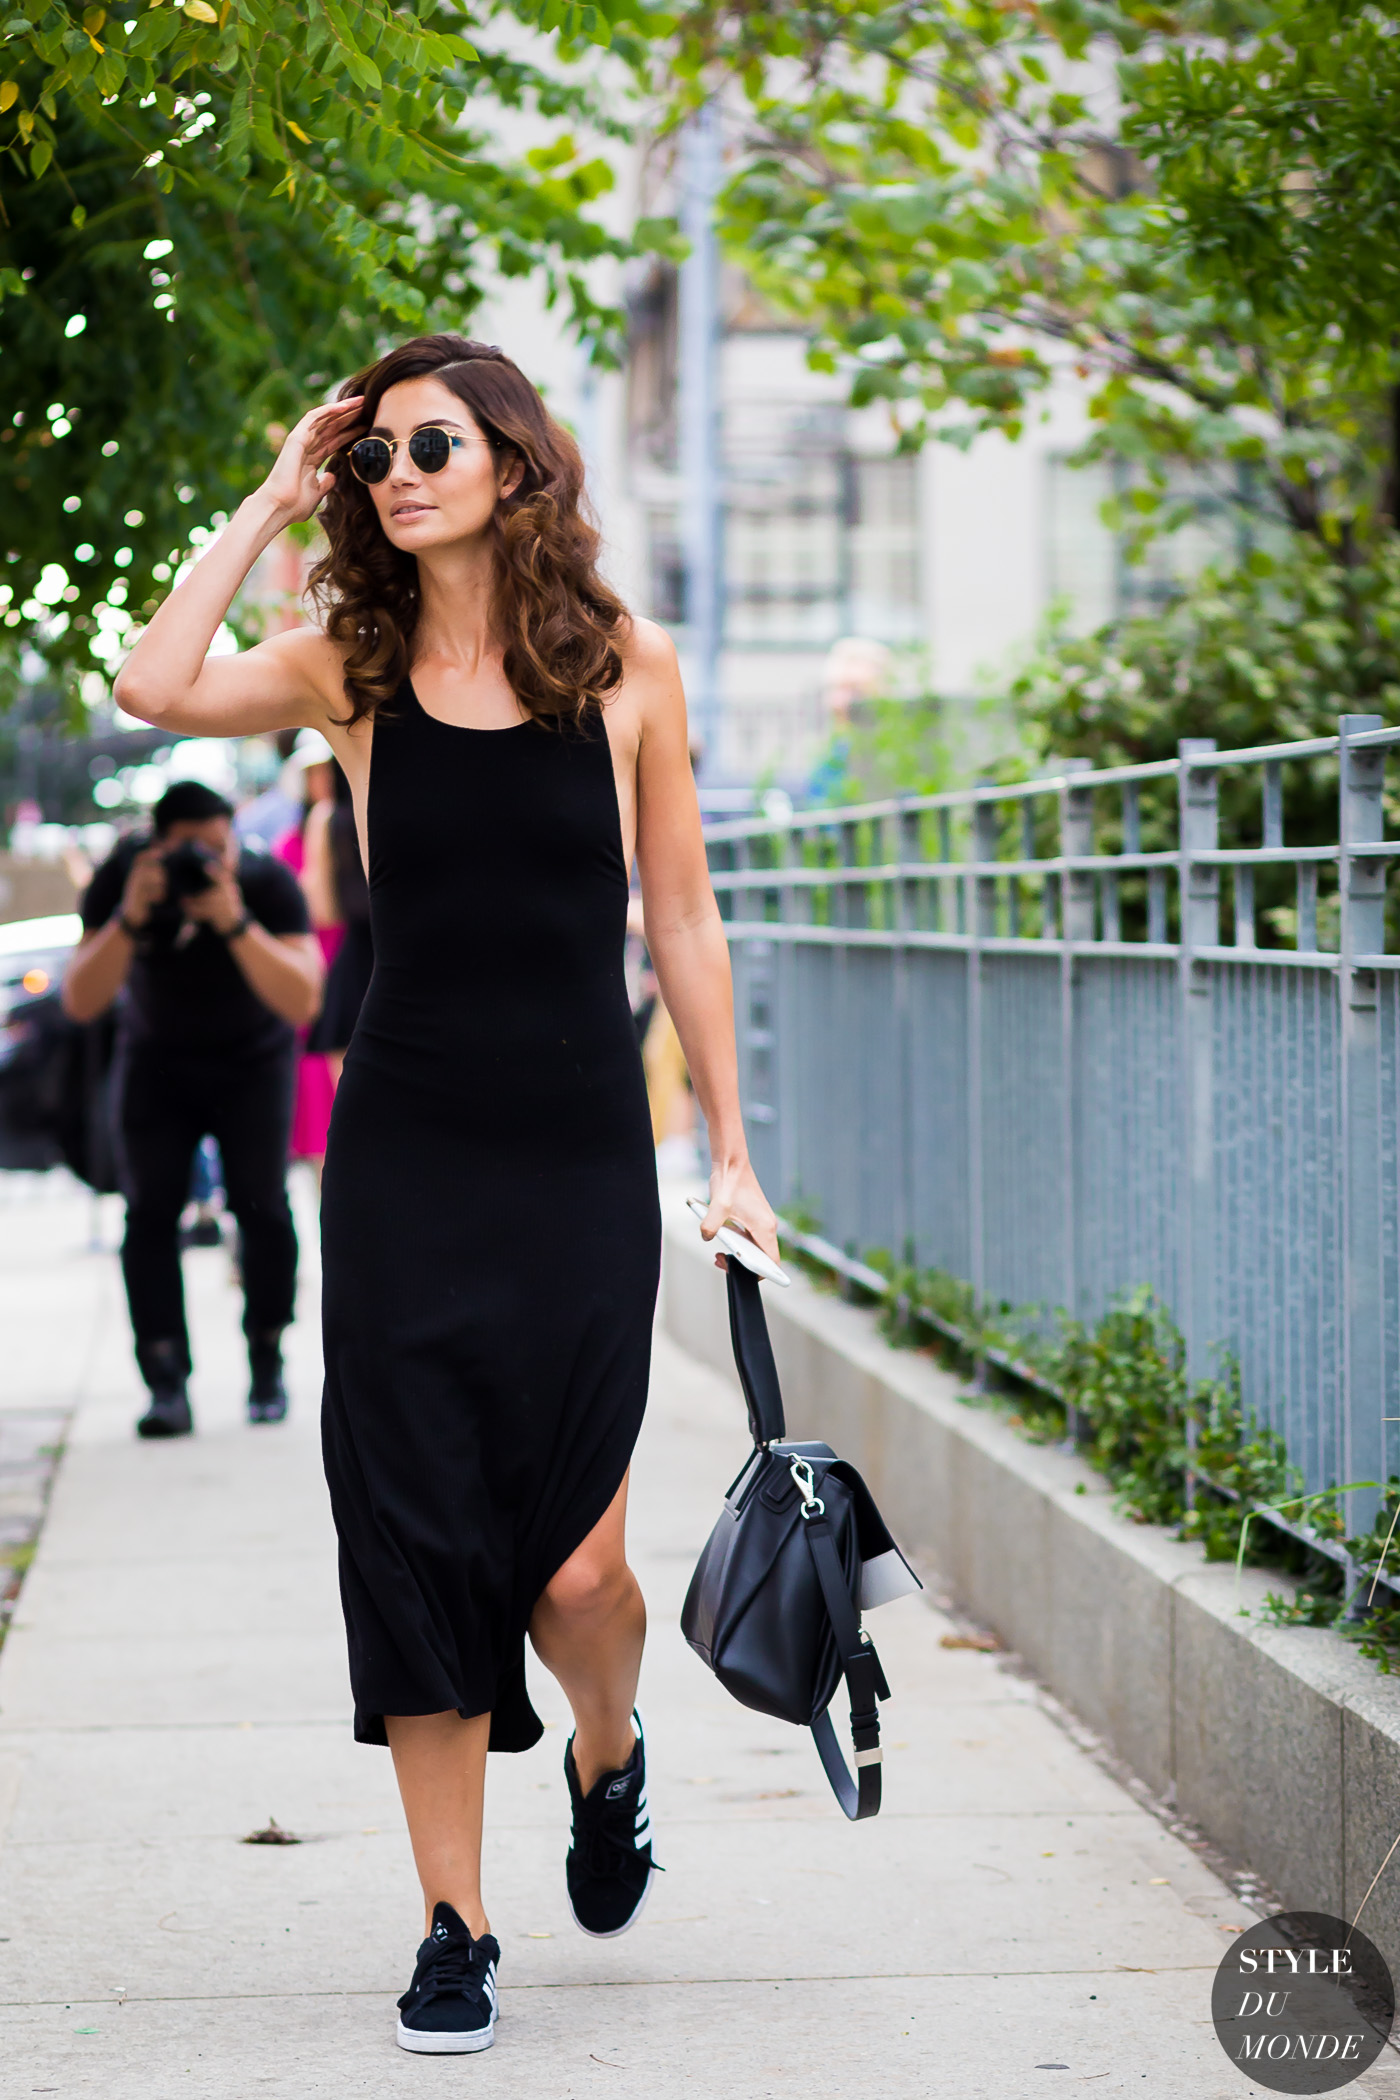 Lily Aldridge Street Style Street Fashion Streetsnaps by STYLEDUMONDE Street Style Fashion Photography